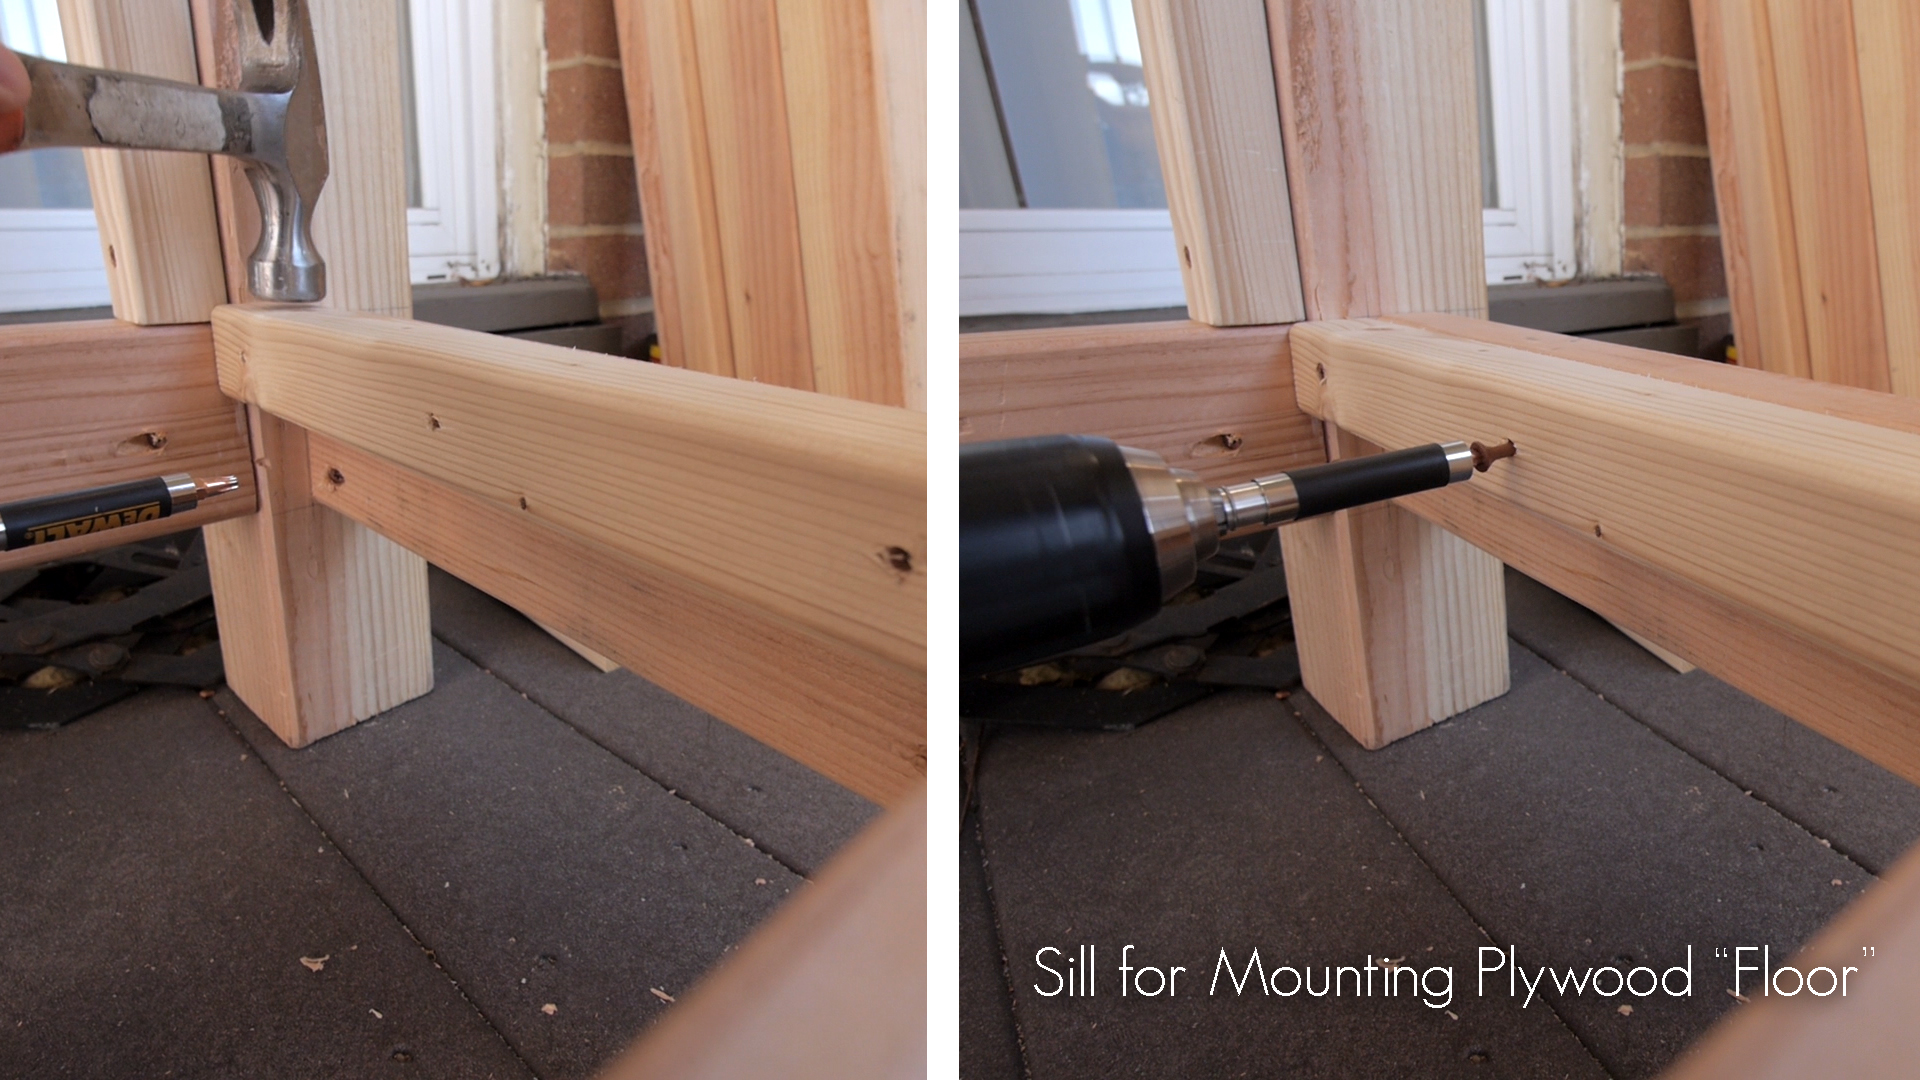 Picture of Sills for the Ends of the Plywood Floor